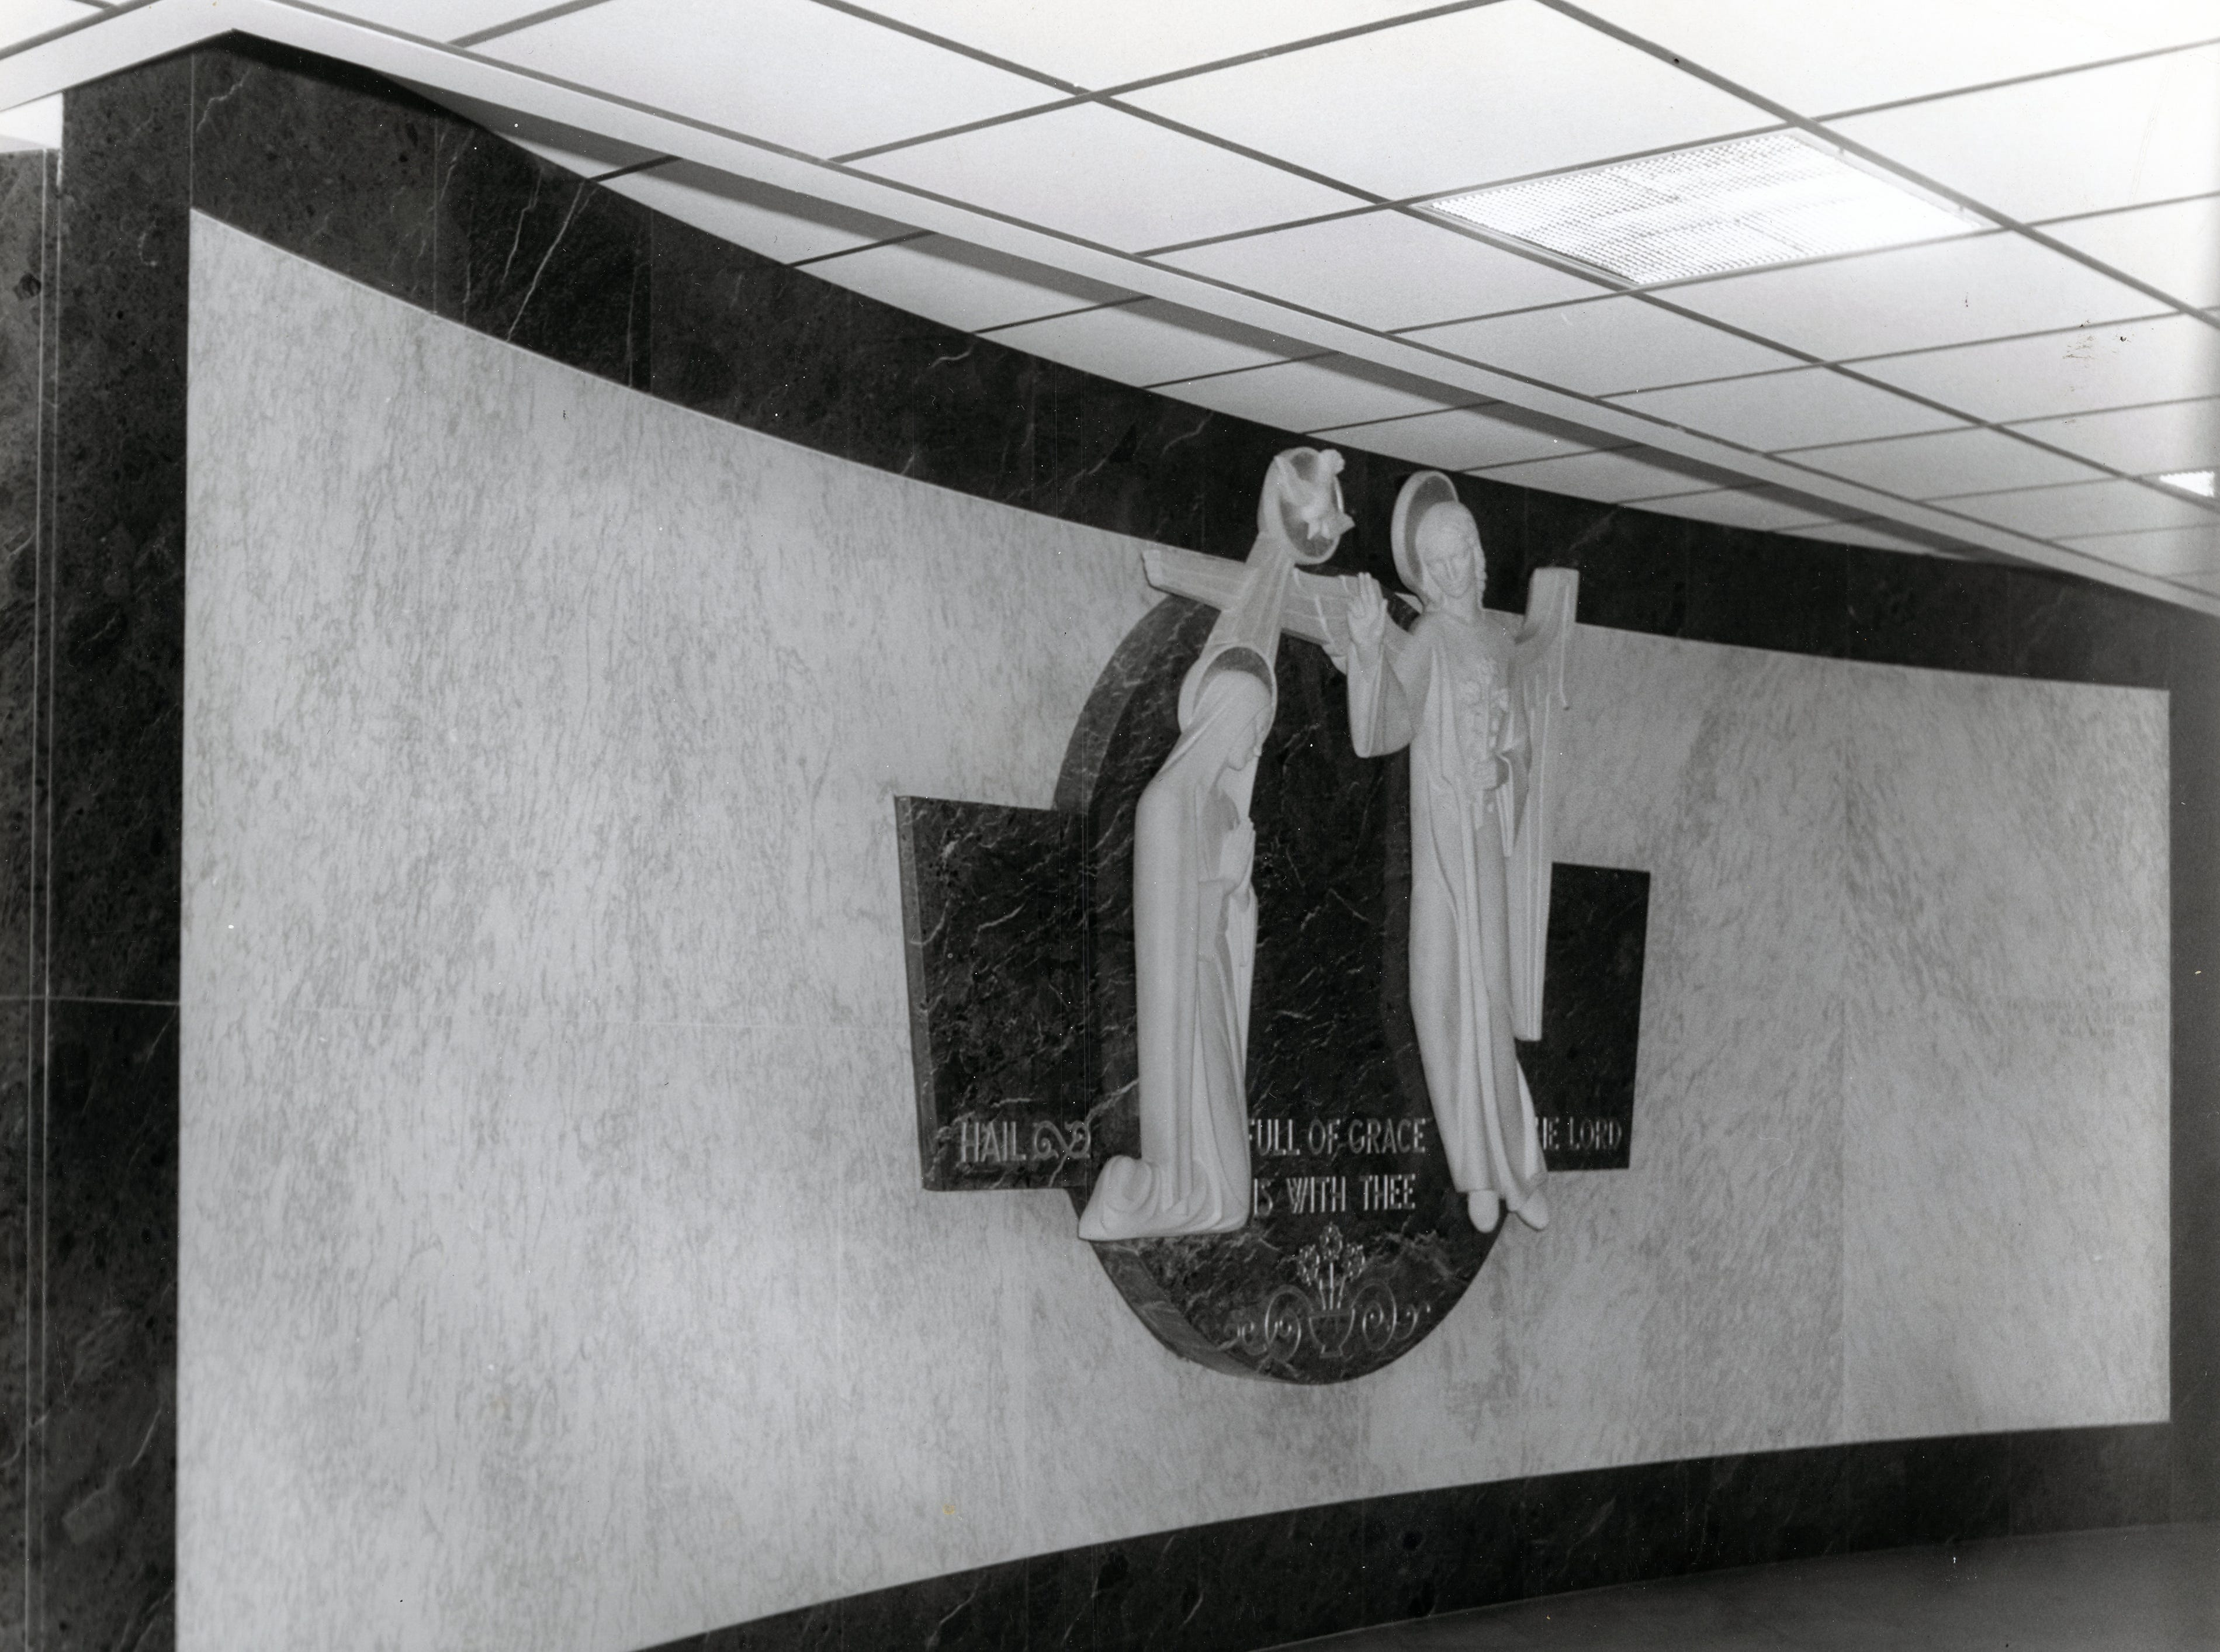 Side view of the Annunciation scene in St. Mary's Hospital in March 1966.